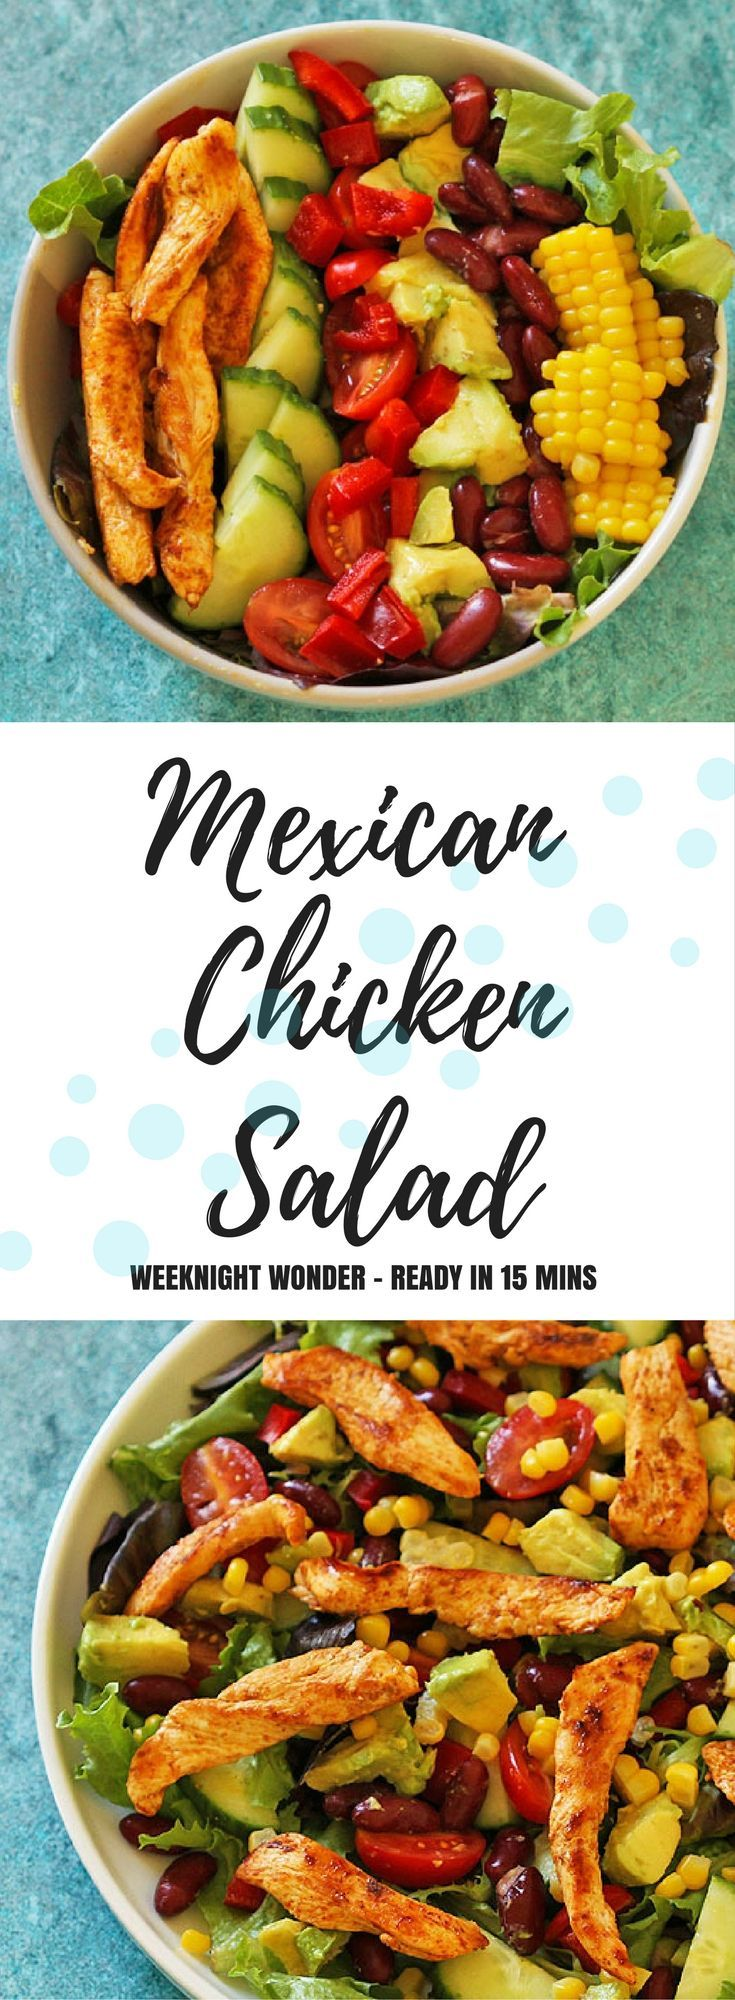 Lift your salad game with this delicious Mexican Chicken Salad.  Filled to the brim with delicious ingredients, including avocado, red kidney beans and corn.  One bite and you'll be hooked! #salad #mexican #healthyfood #healthyeating #healthyrecipes